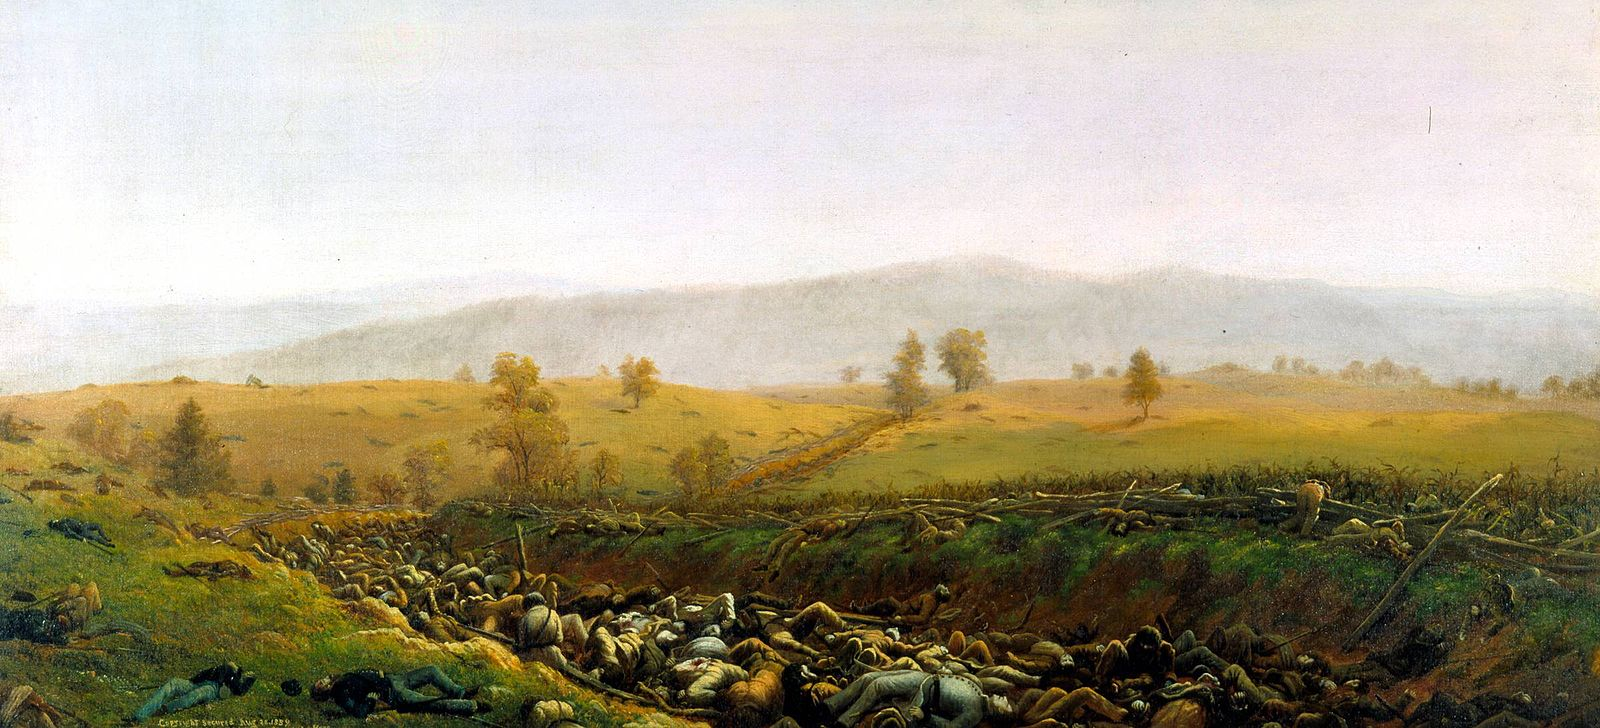 The Aftermath at Bloody Lane, by Capt. James Hope